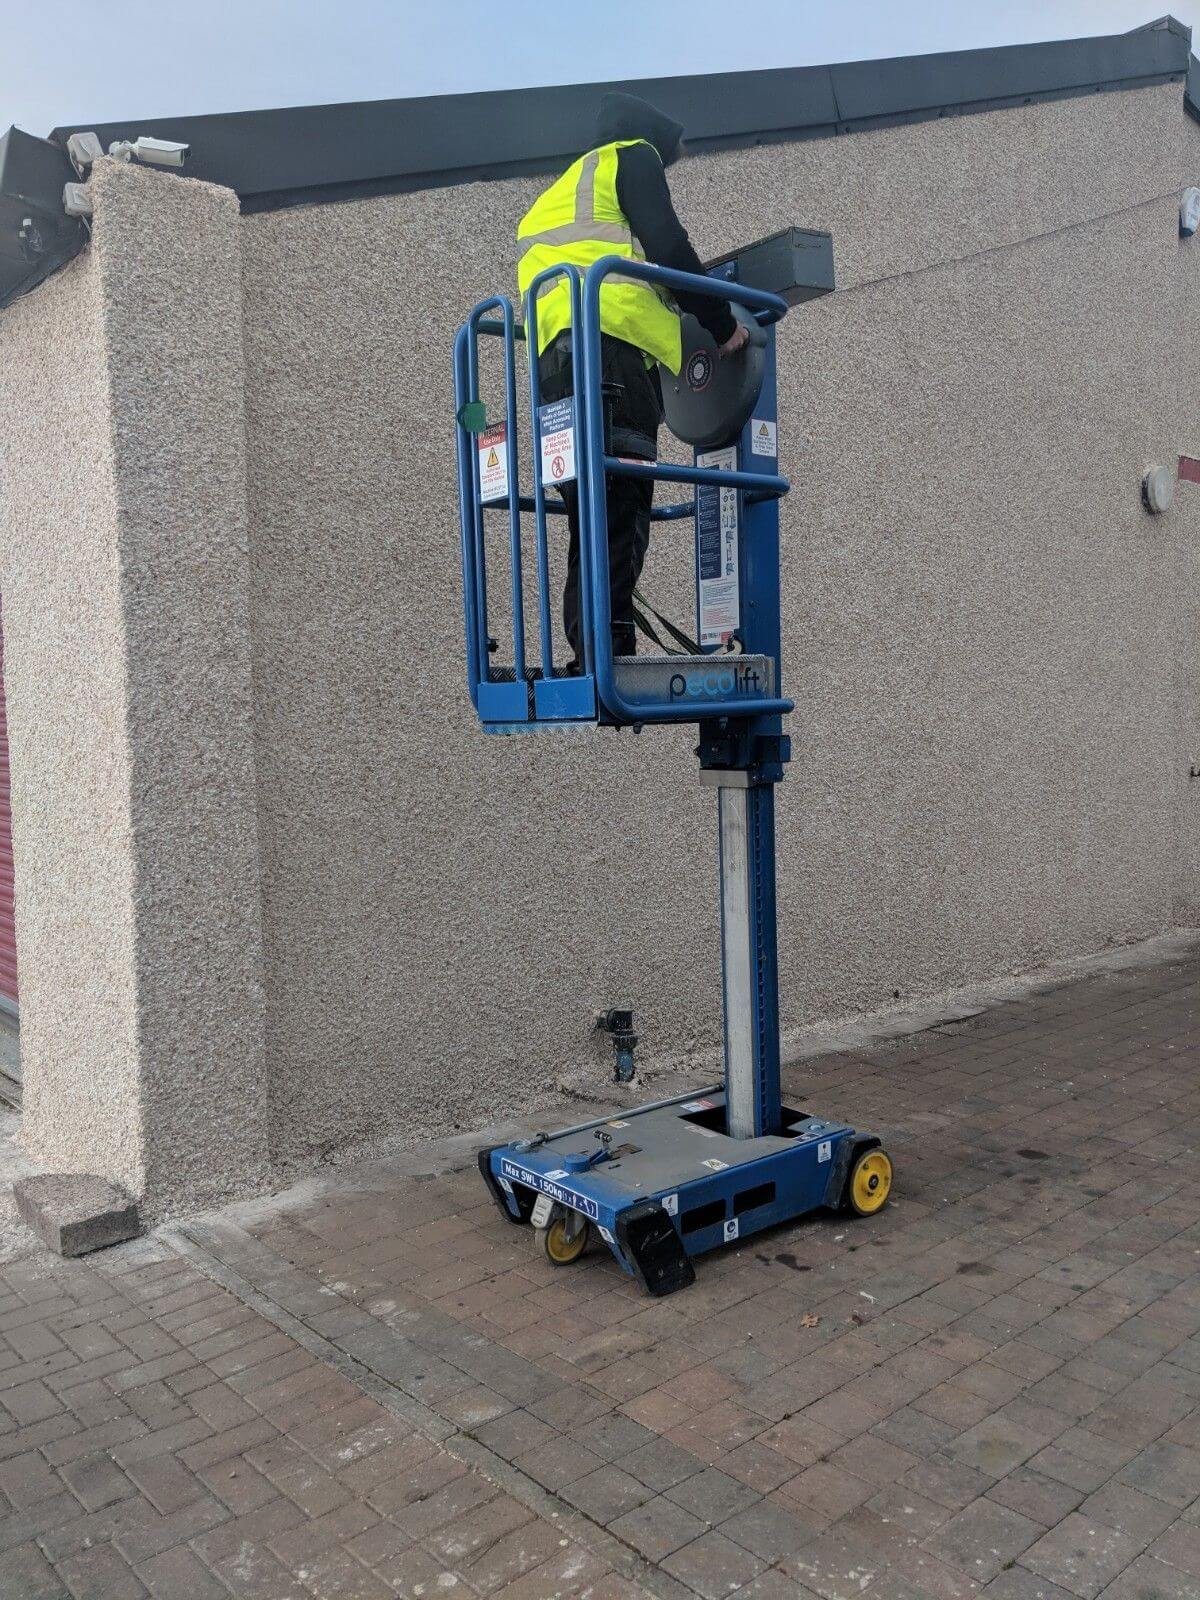 peco access equipment